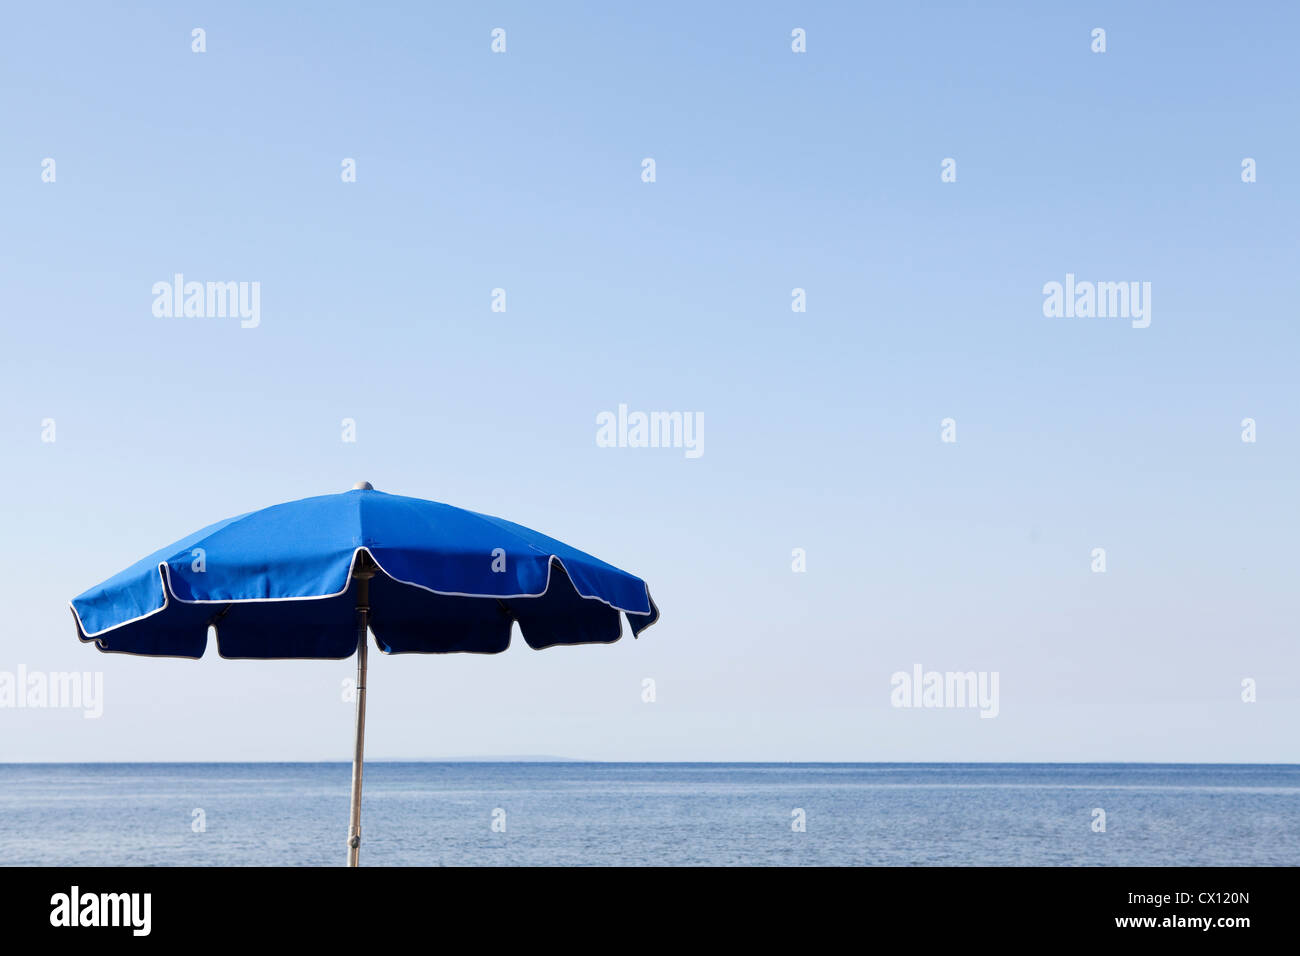 Blue parasol against the sea - Stock Image